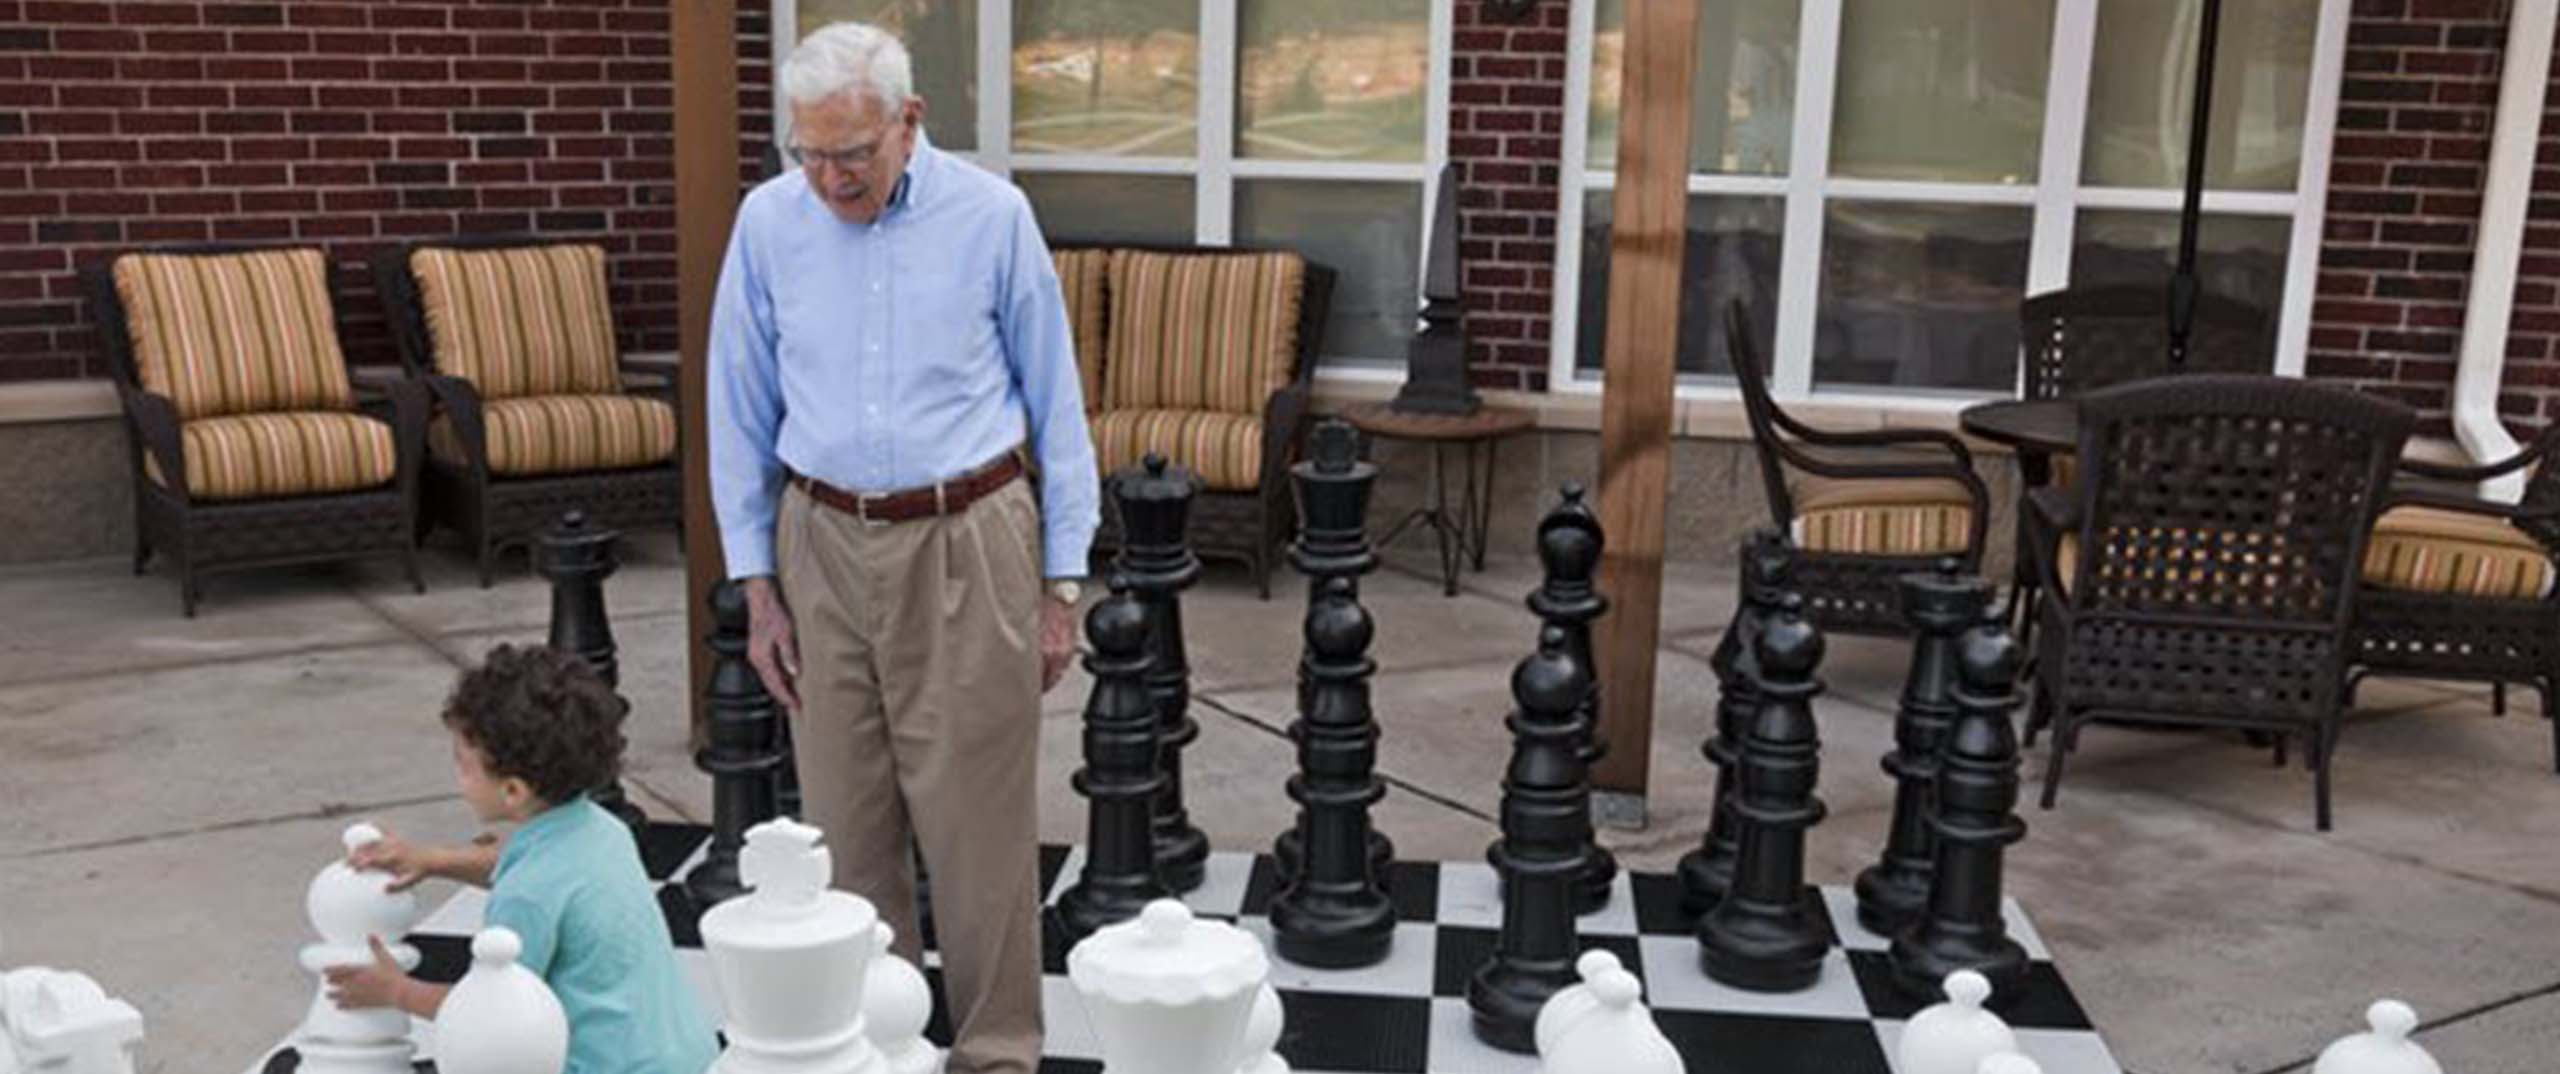 Chessboard Grandfather and Son